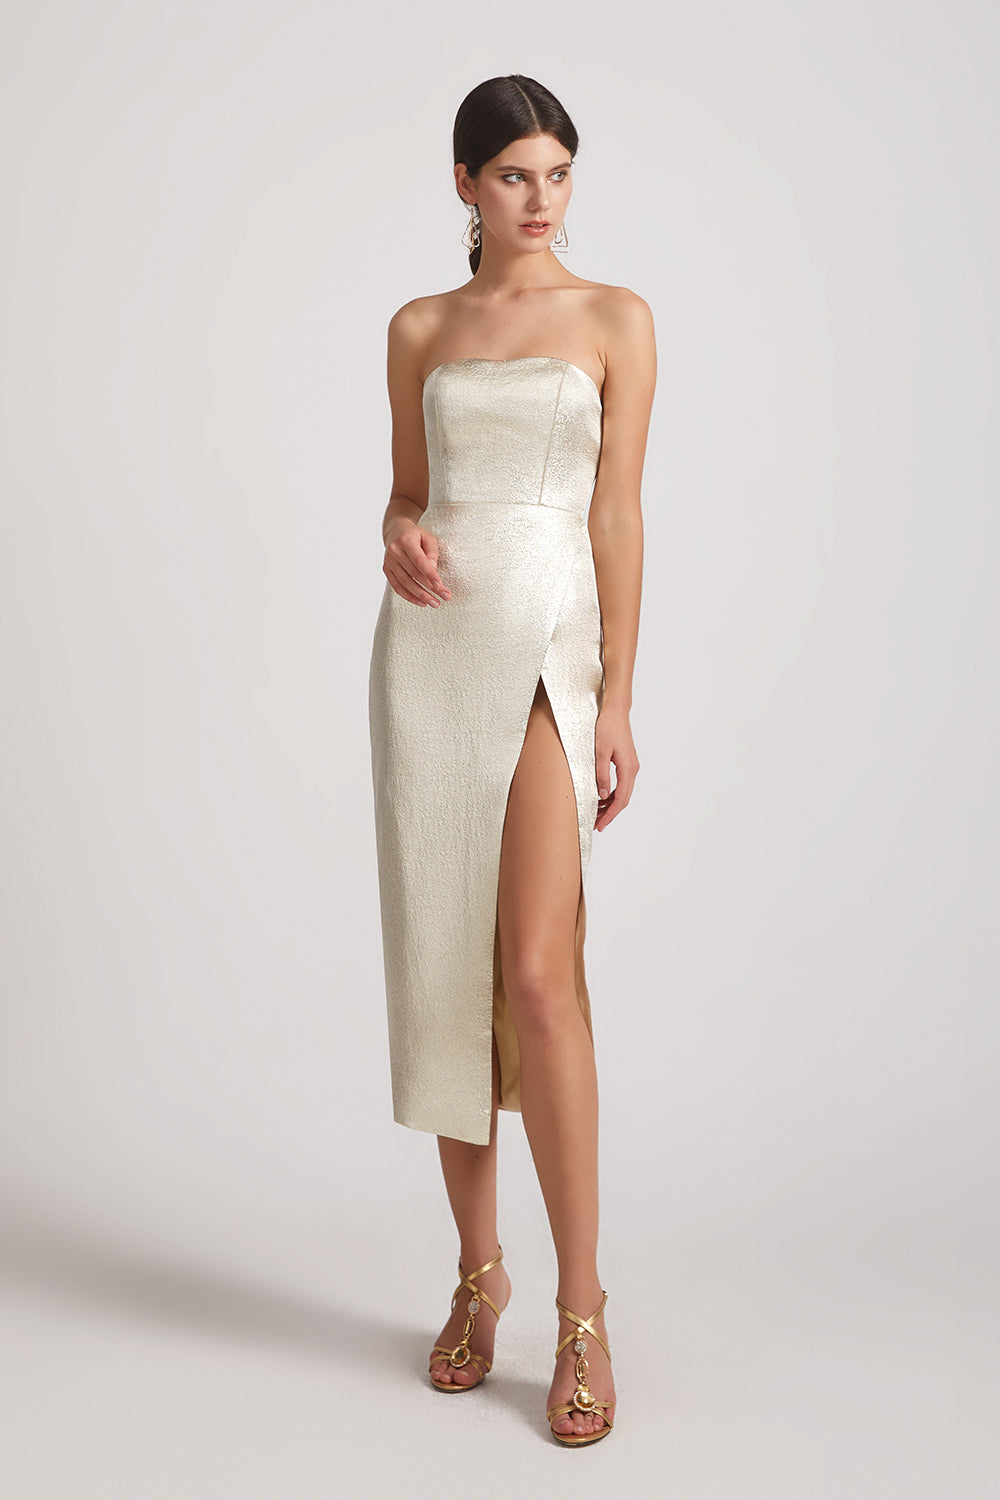 metallic strapless sheatn maids of honor dresses